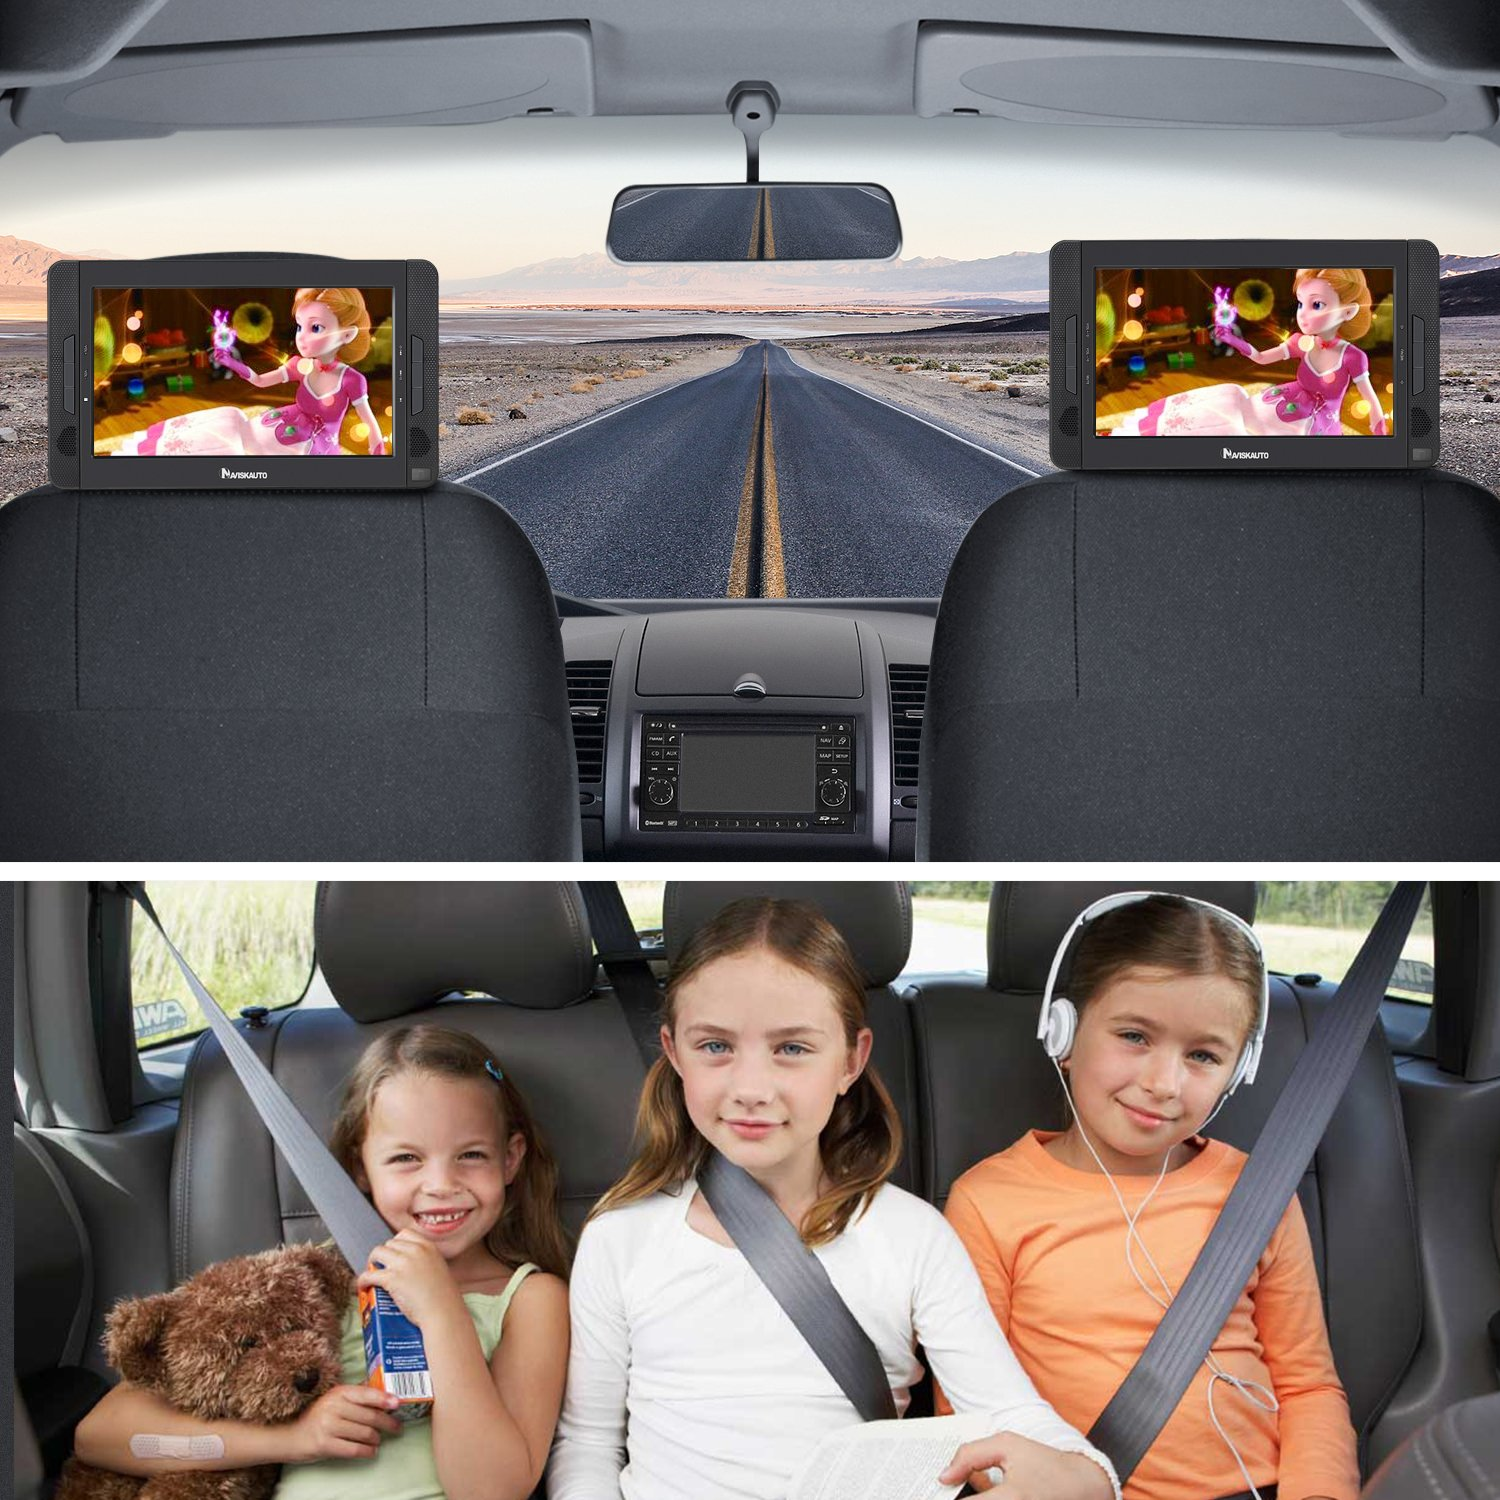 NAVISKAUTO 10.5'' Portable DVD Player for Car Dual Screen, Headrest Video Player with 5-Hour Built-in Rechargeable Battery, Last Memory and Region Free by NAVISKAUTO (Image #2)